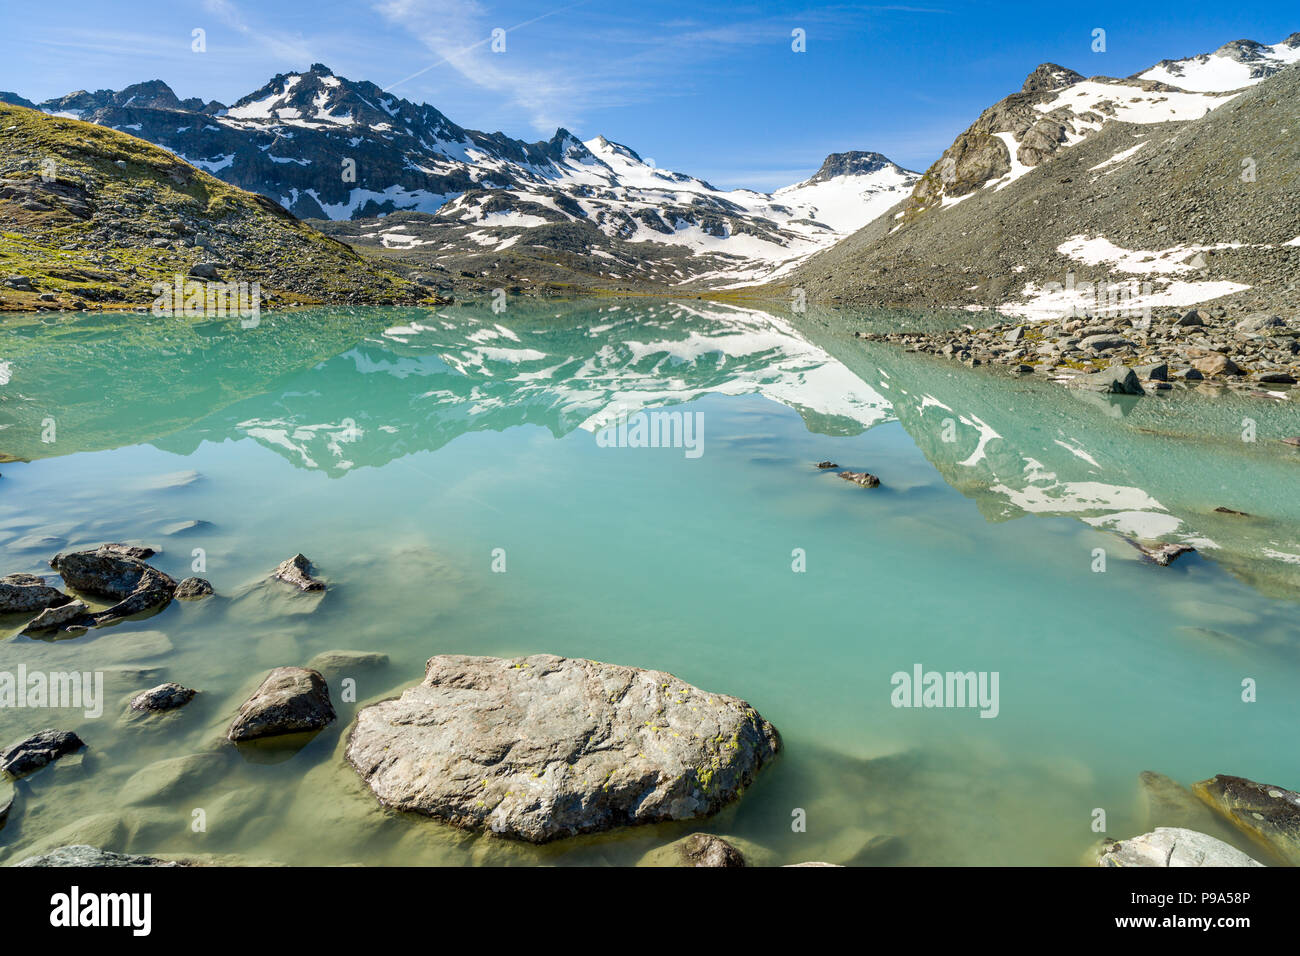 Beautiful lake in the mountains Lac du Grand Désert - Stock Image